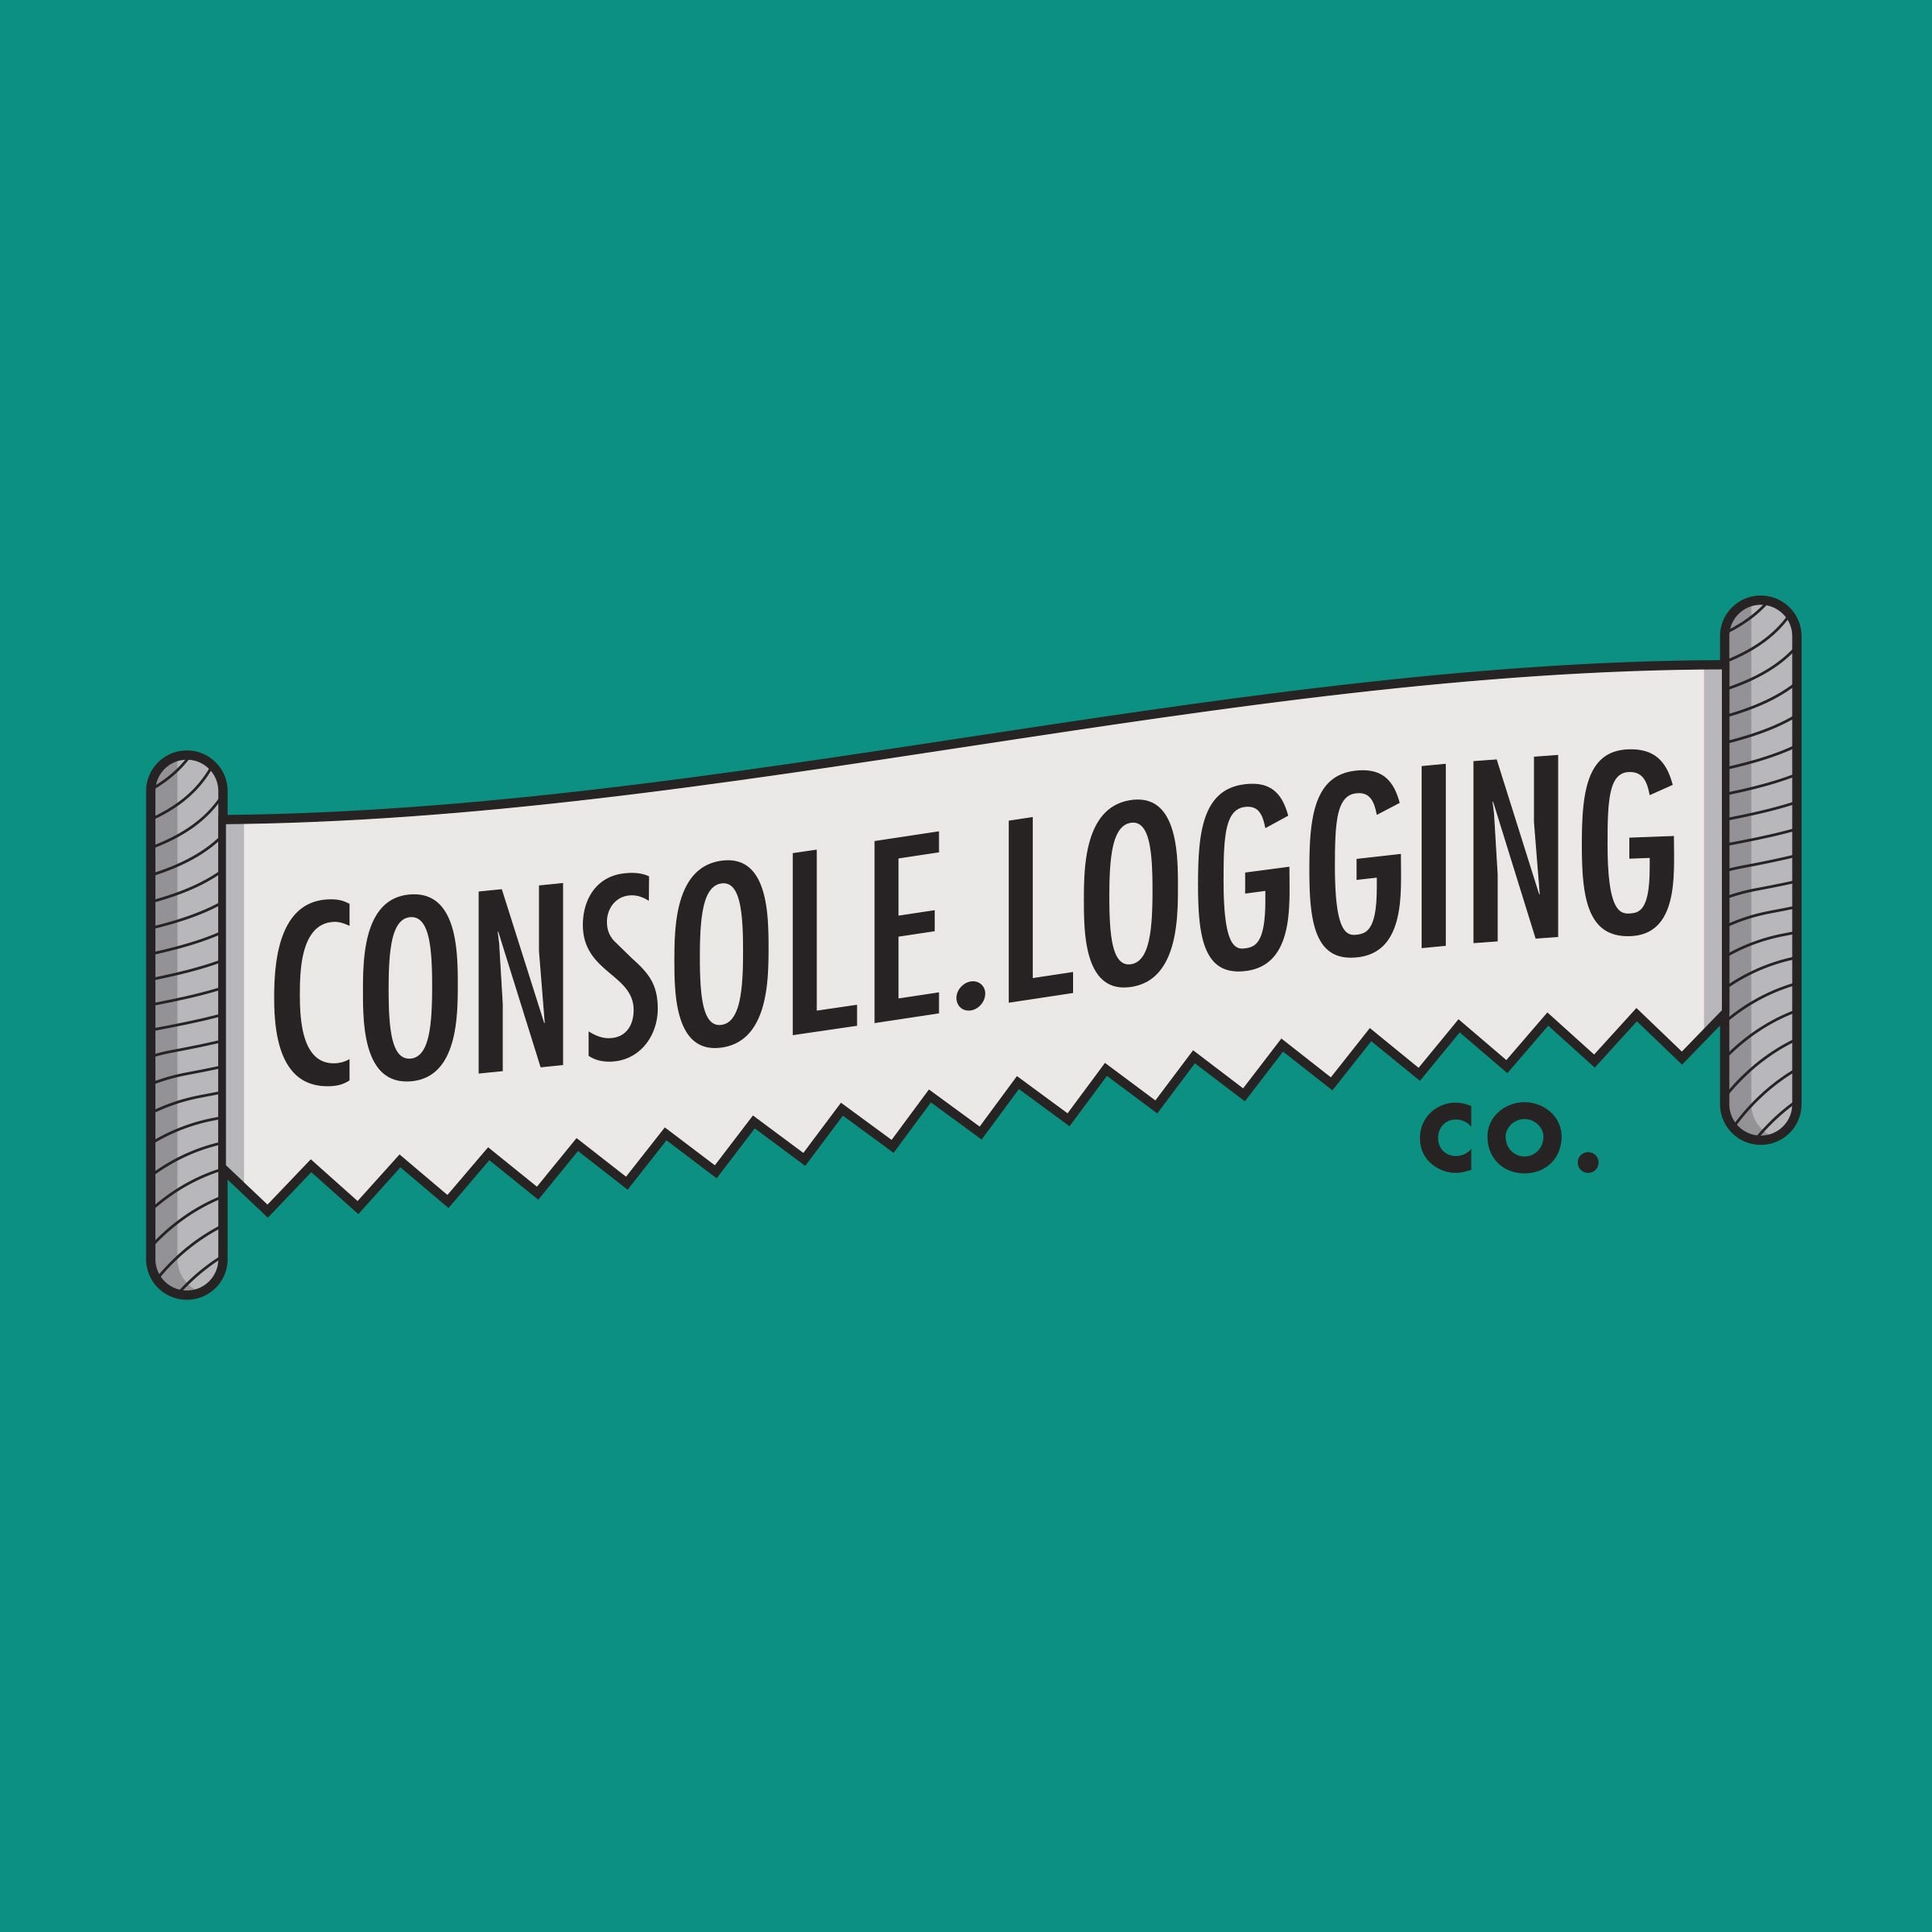 Console.Logging Detail